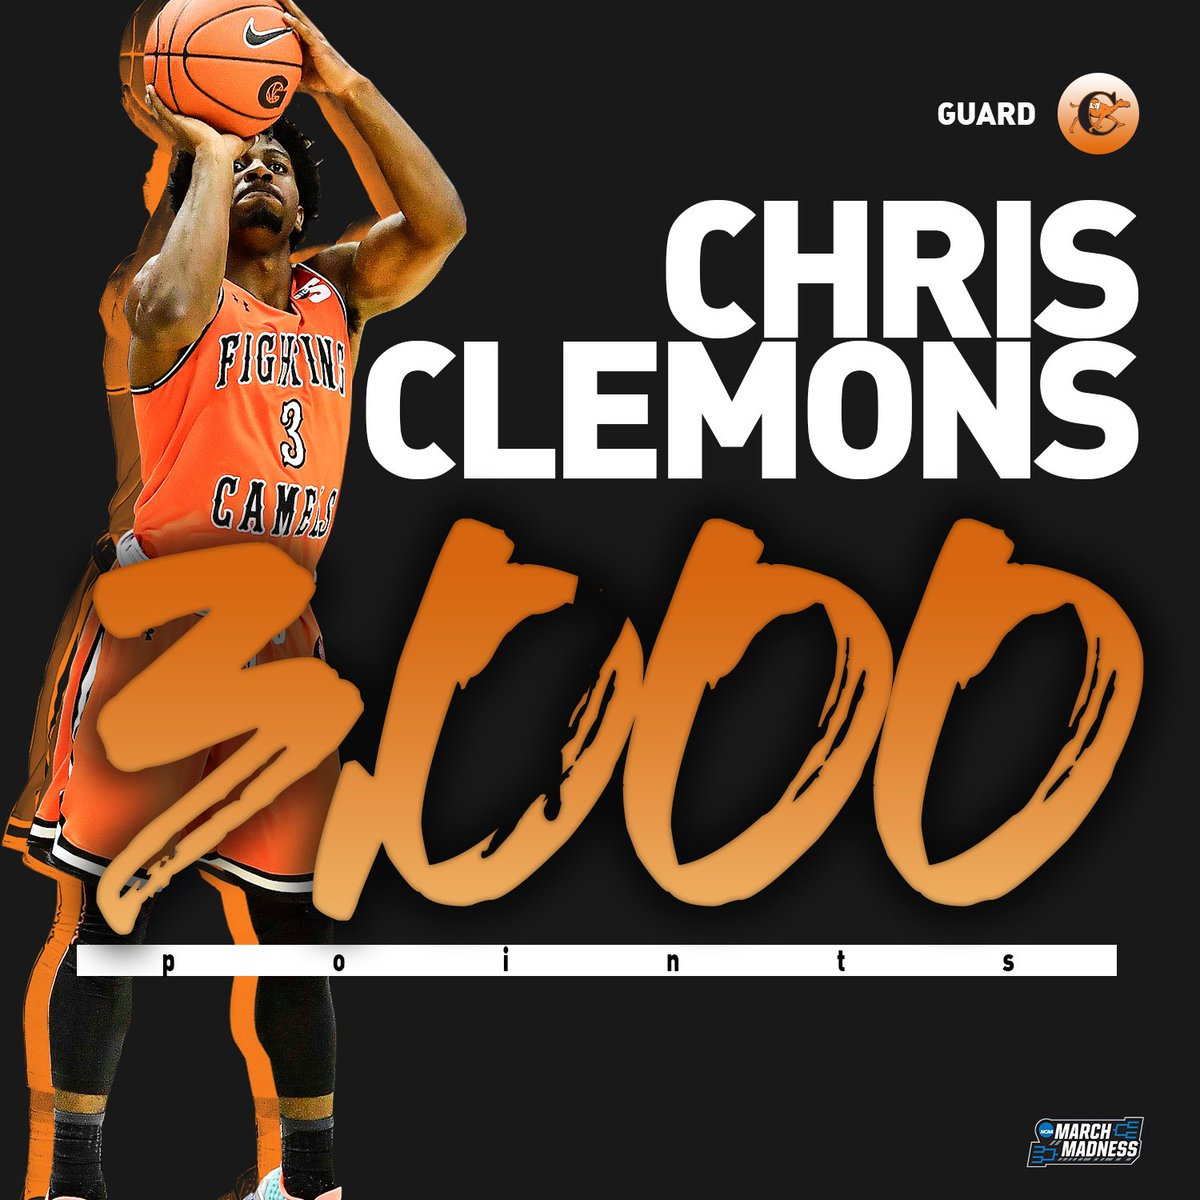 Mr. 3️⃣0️⃣0️⃣0️⃣  Congrats to Campbell's Chris Clemons on becoming the 9th D1 player with 3,000 career points! 👏